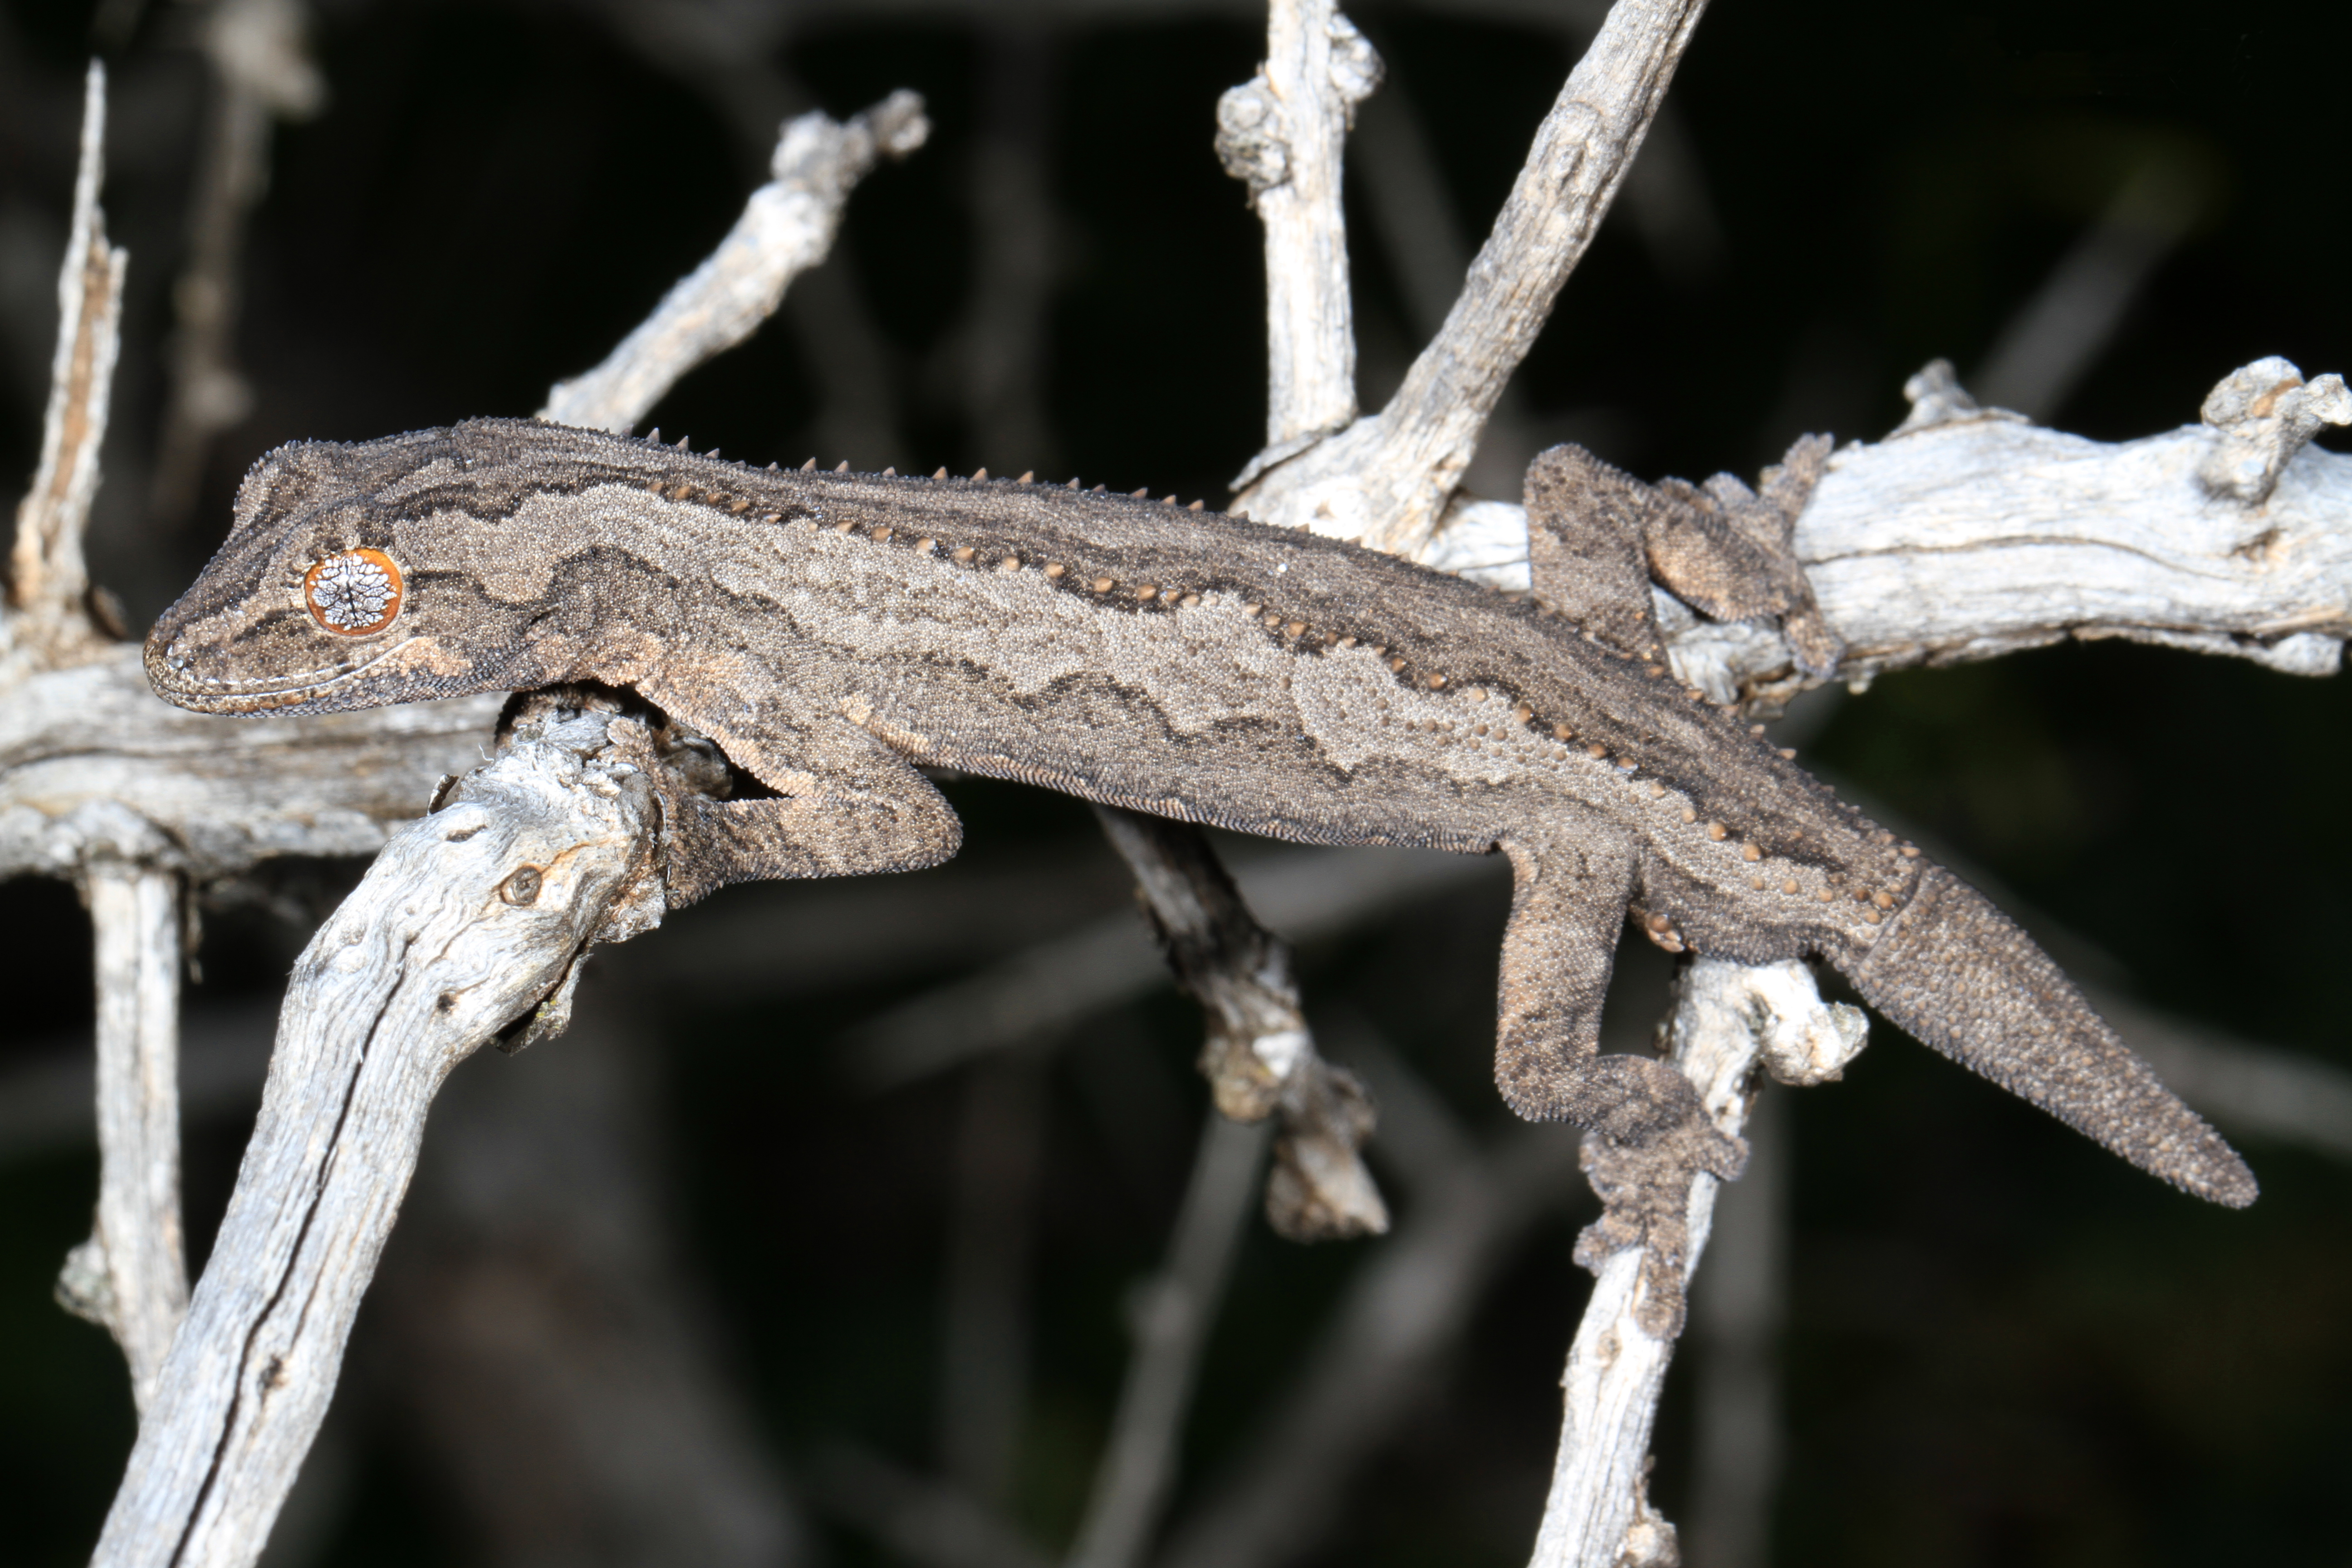 Image of Eastern Spiny-tailed Gecko